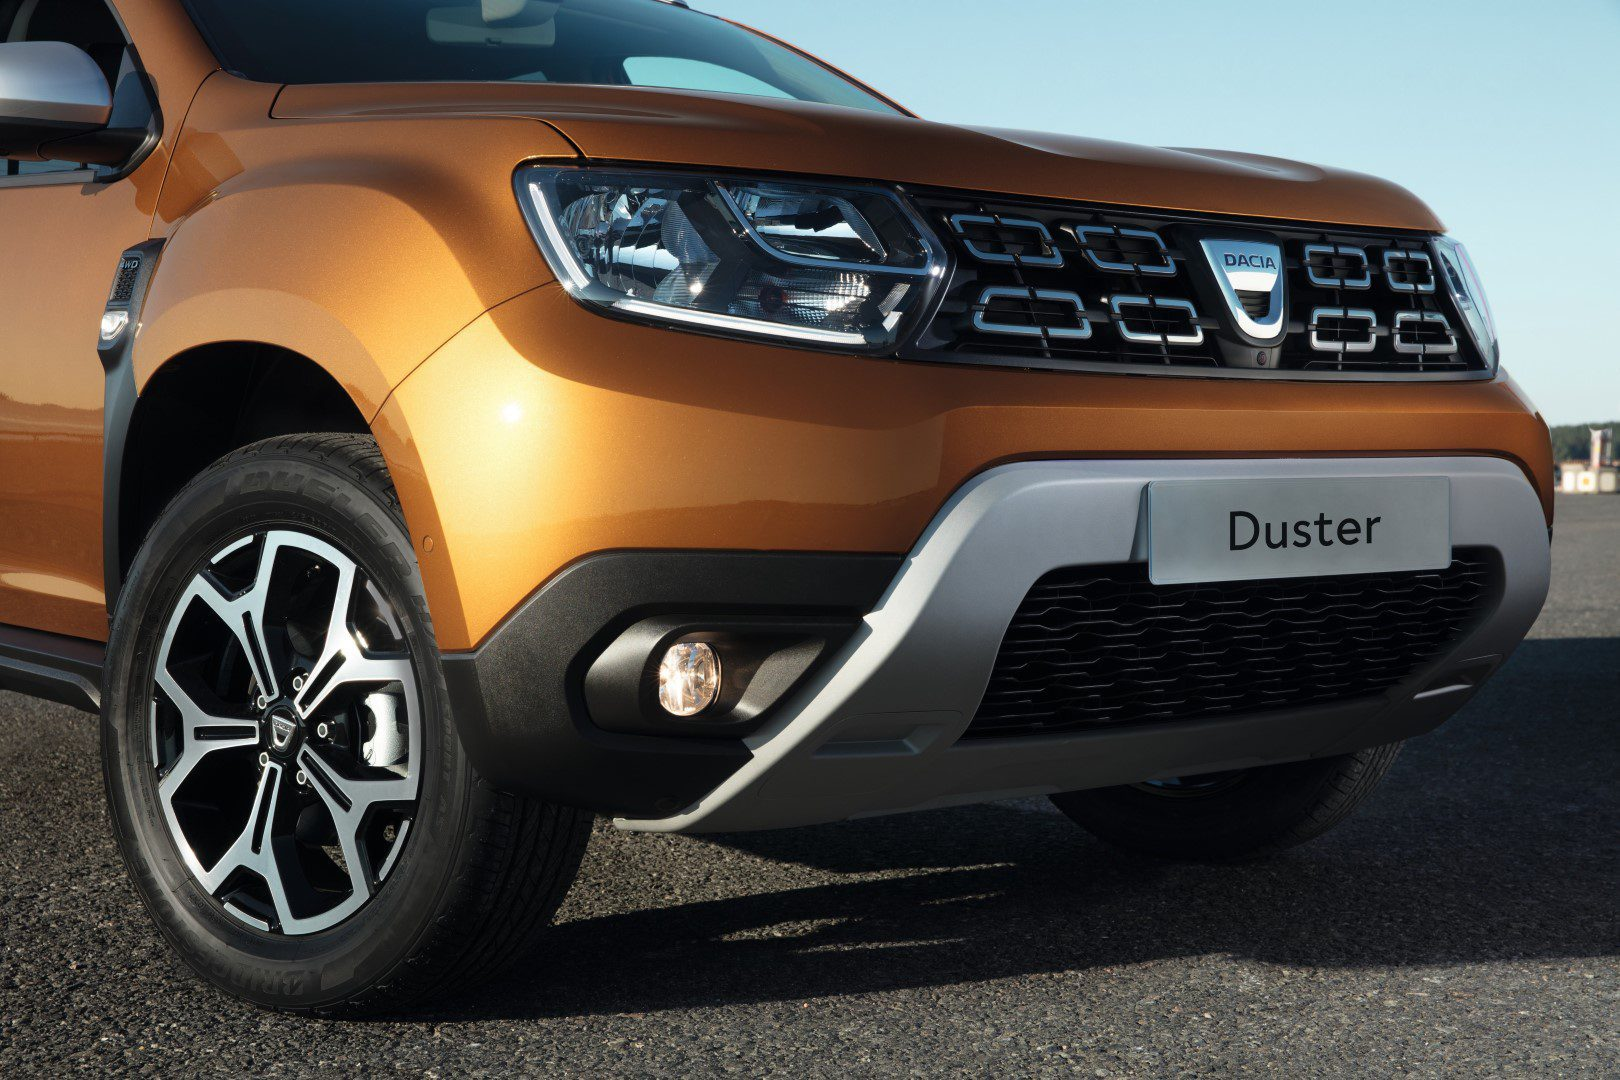 Dacia presenteert nieuwe duster for Interieur dacia duster